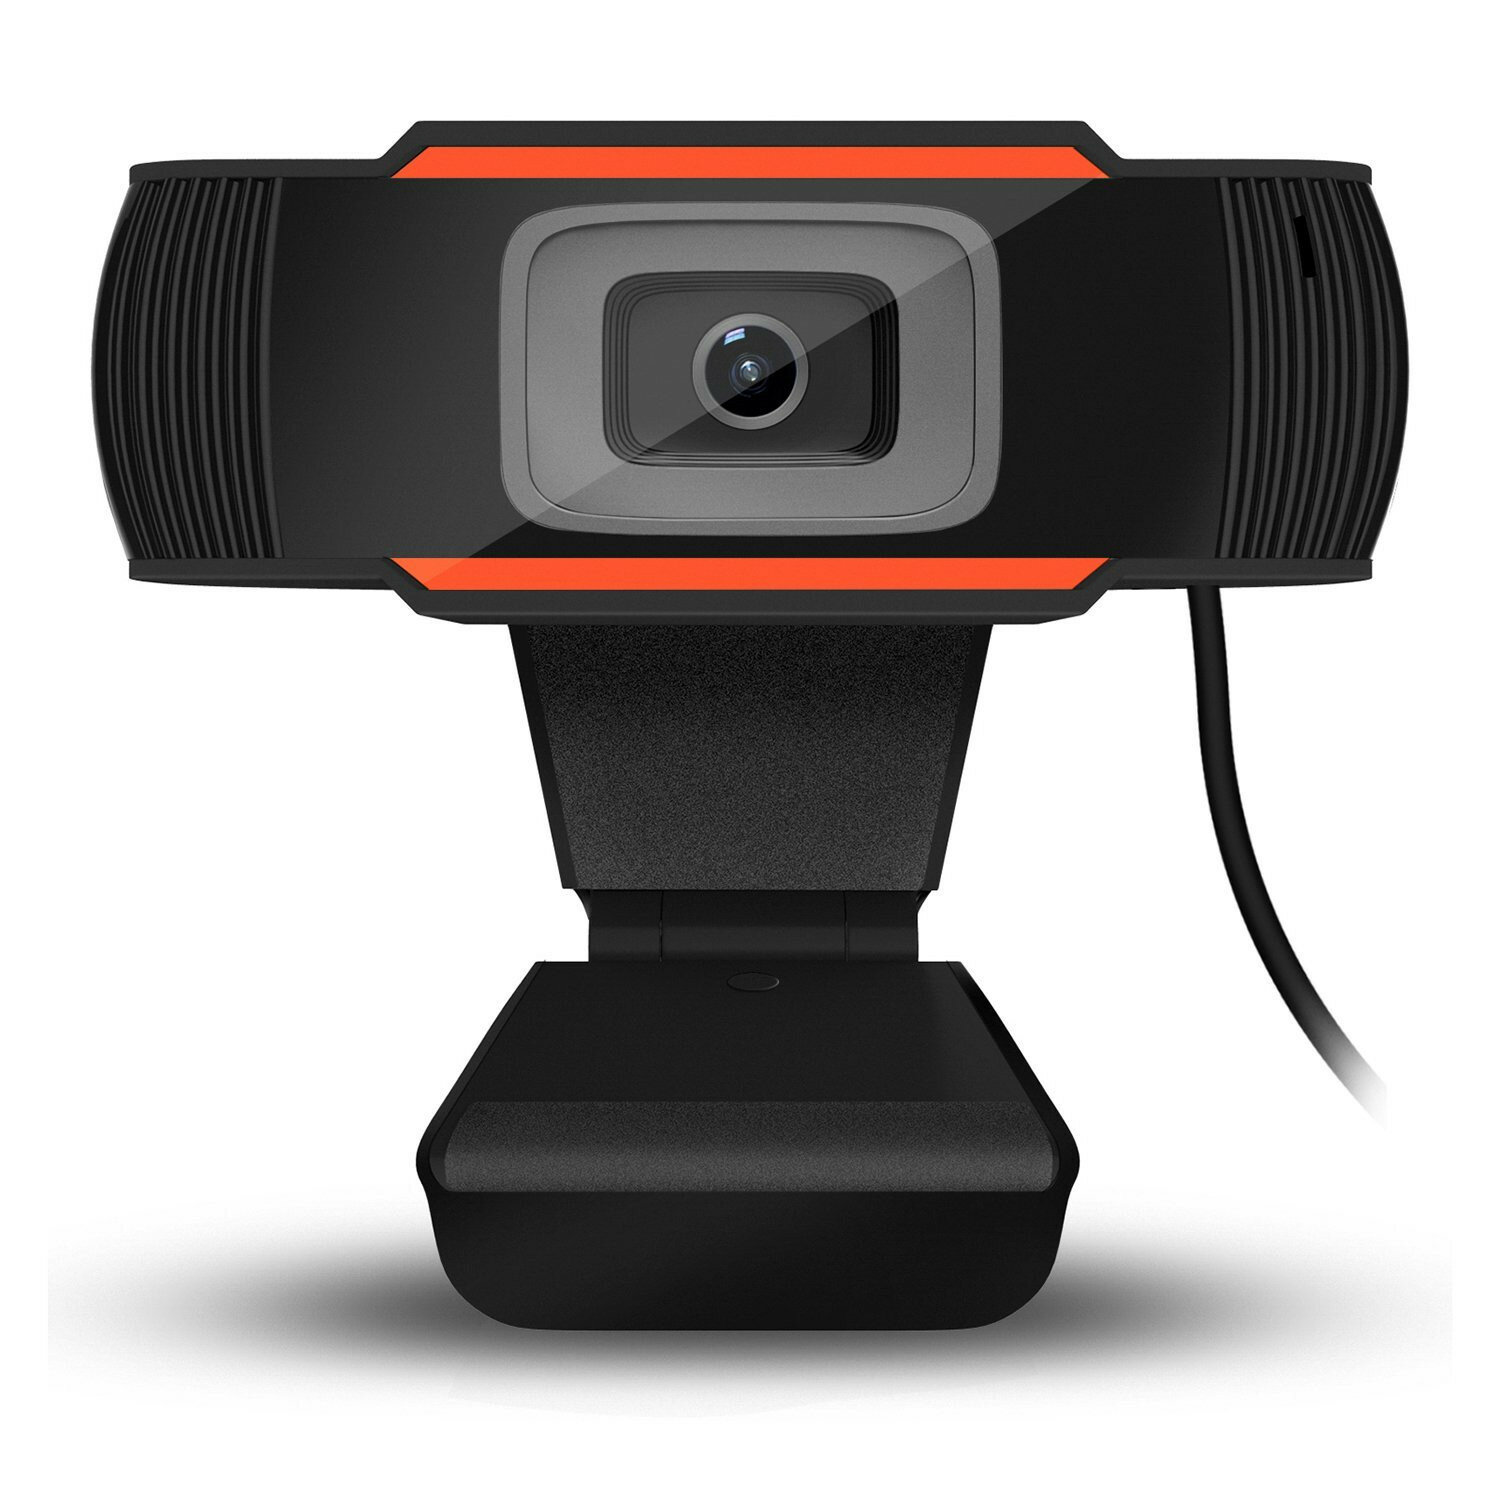 https://www.banggood.com/A870C-USB-2_0-PC-Camera-640X480-Video-Record-Web-Camera-with-MIC-for-Computer-PC-Laptop-Skype-MSN-p-1126597.html?p=SW261510355666201704